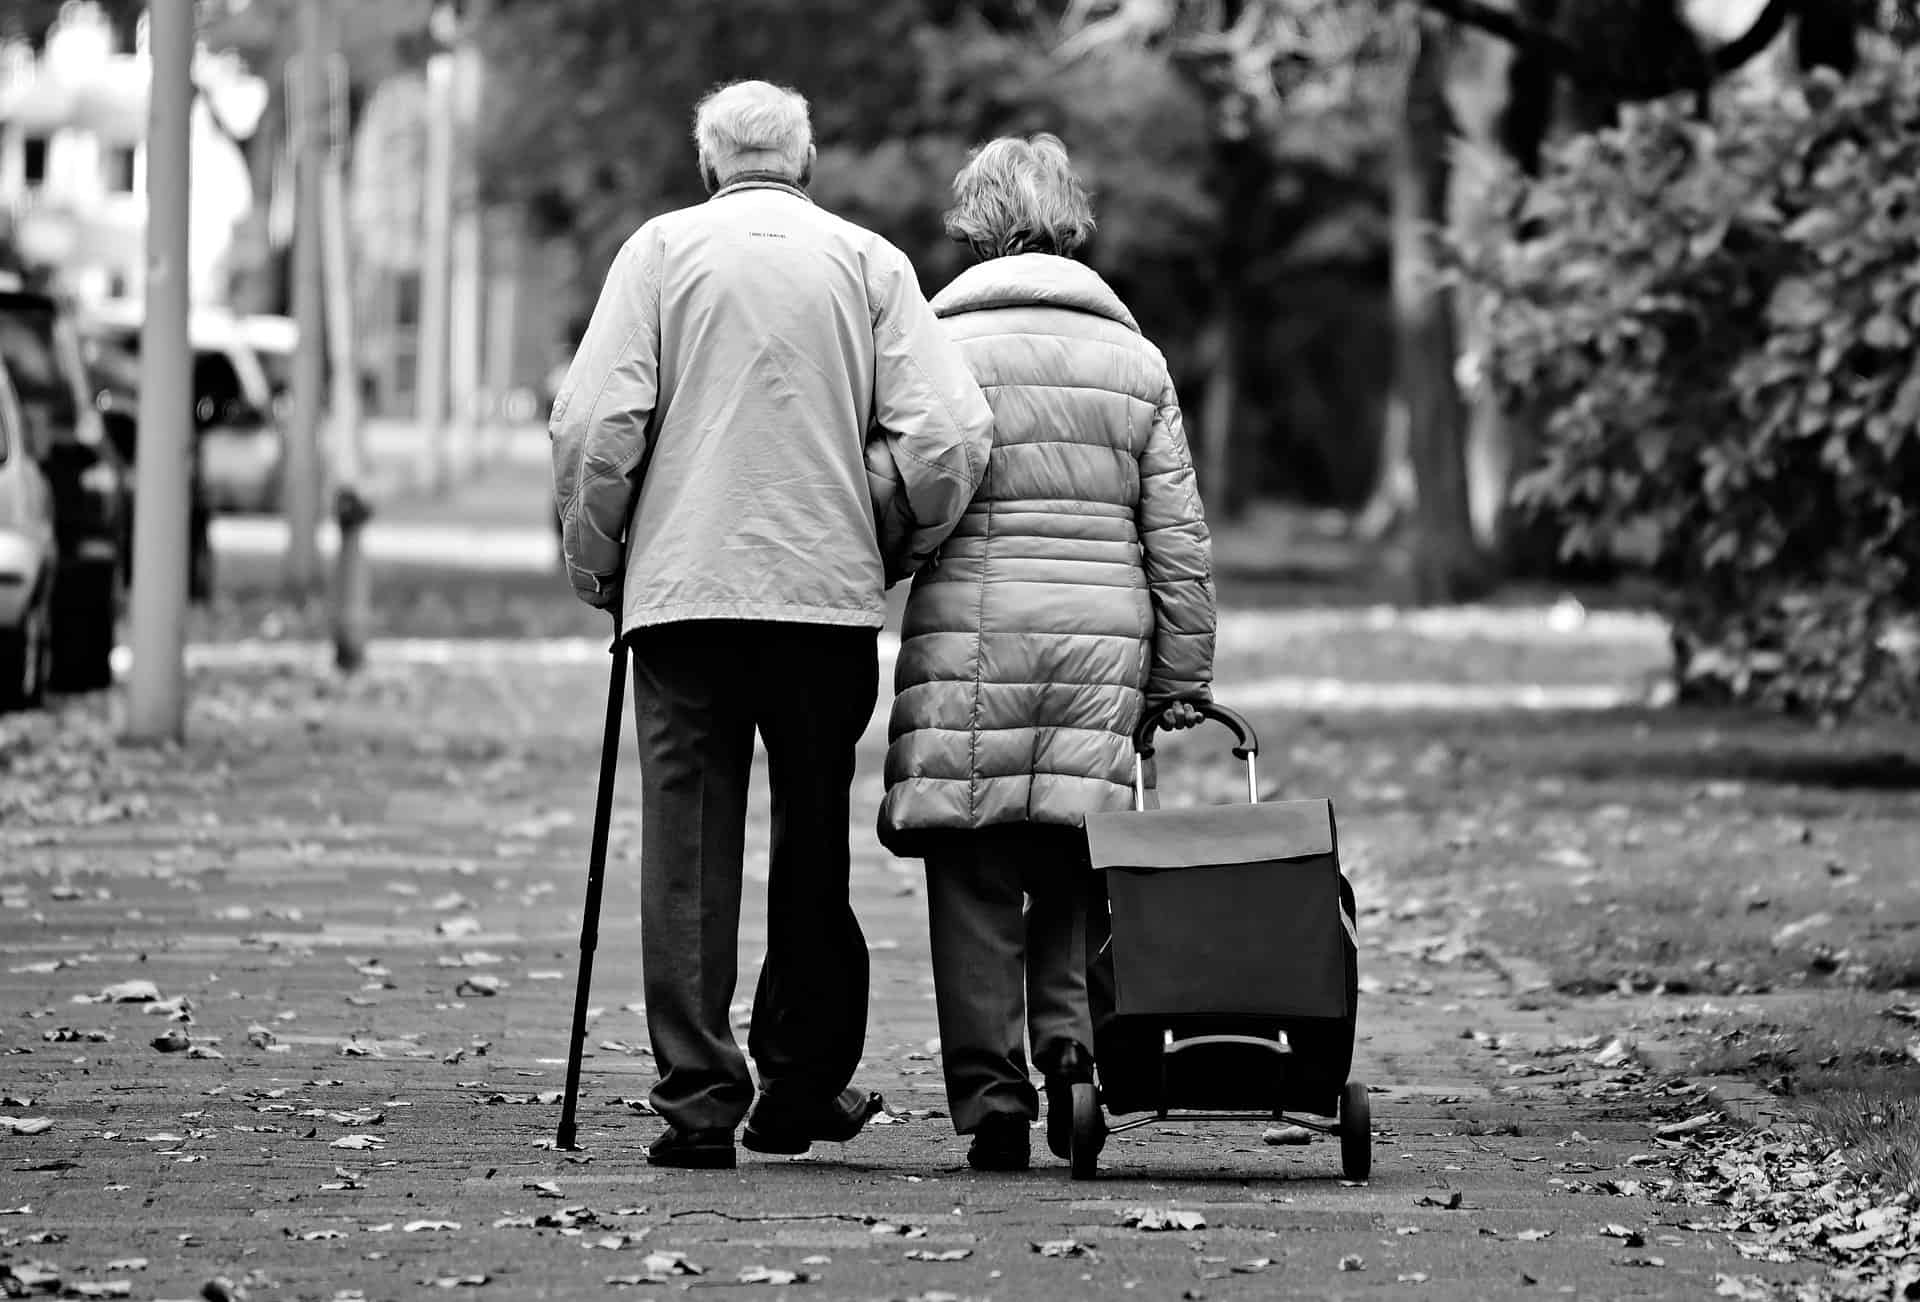 Do you agree that it is inevitable for the elderly to be a burden to society